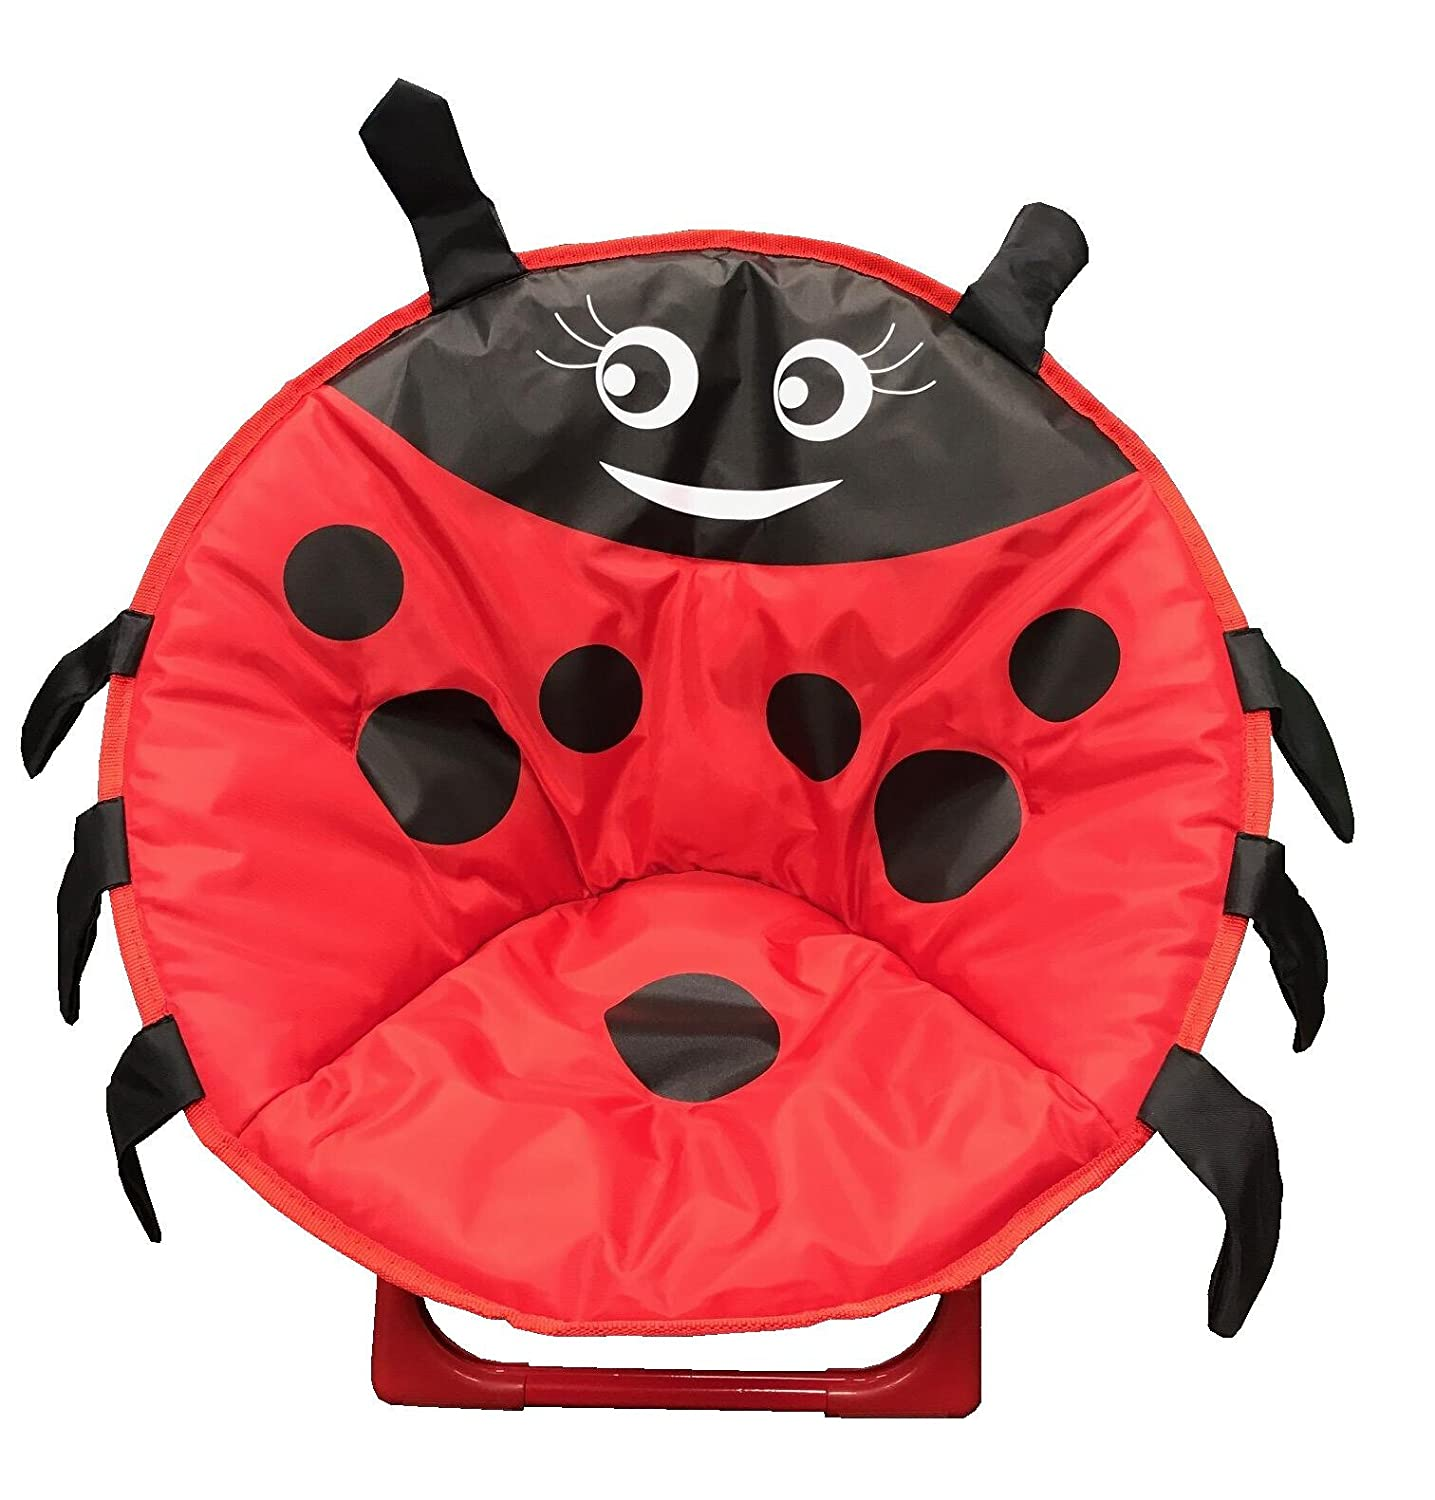 just4baby Kids Children Foldable Bedroom Play Room Moon Chair Moonchair Red Ladybird Design